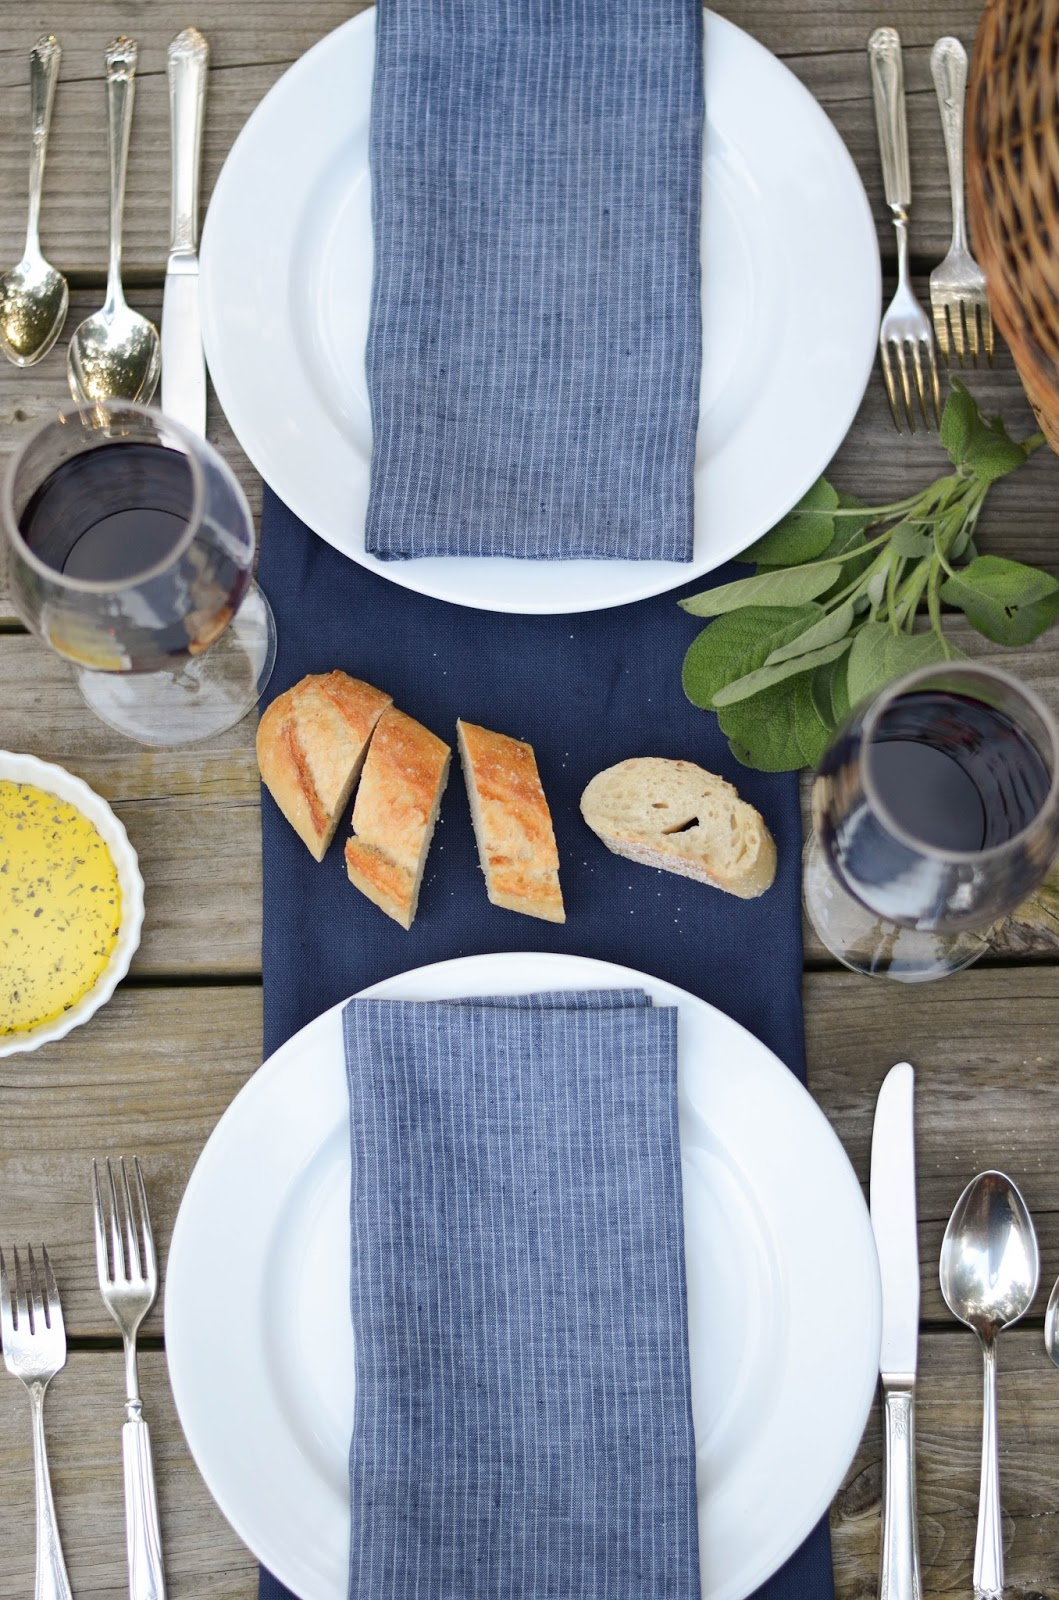 Simple Place Setting with Blue Napkins